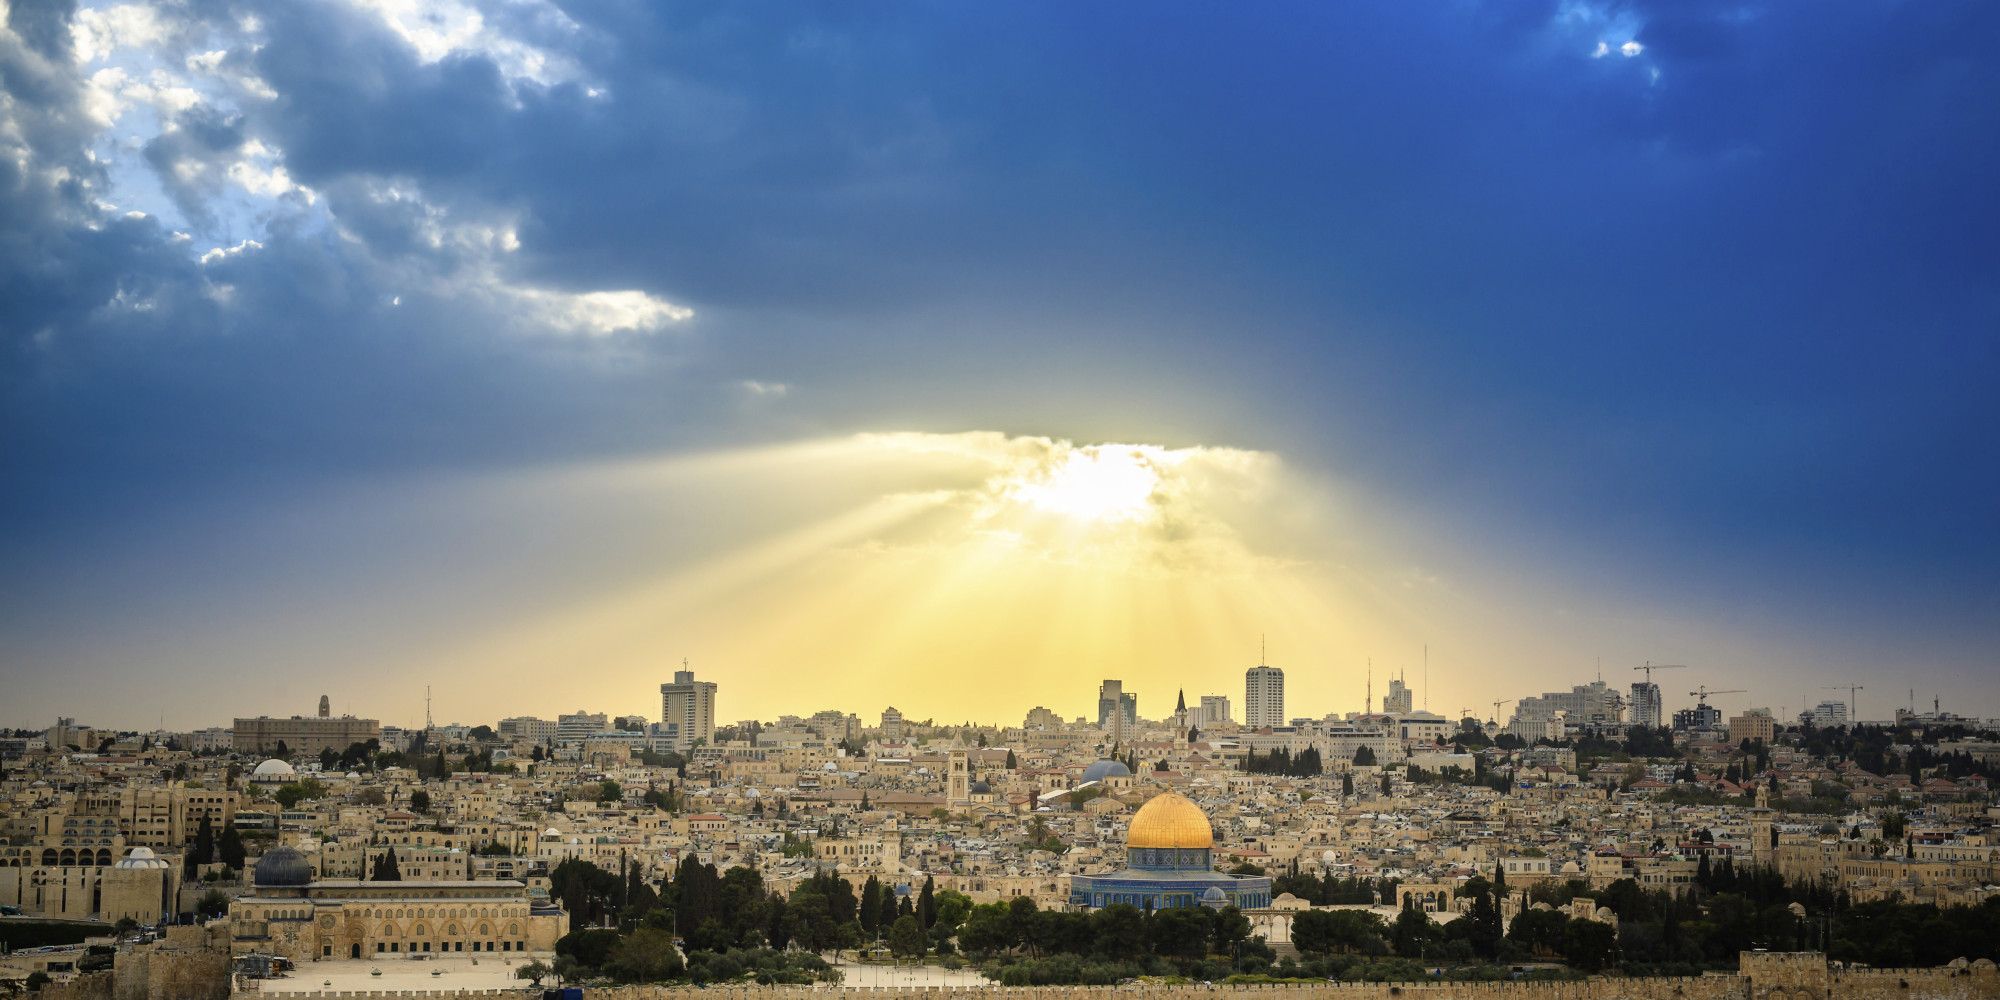 Hd Wallpapers Images: Jerusalem HD Wallpapers